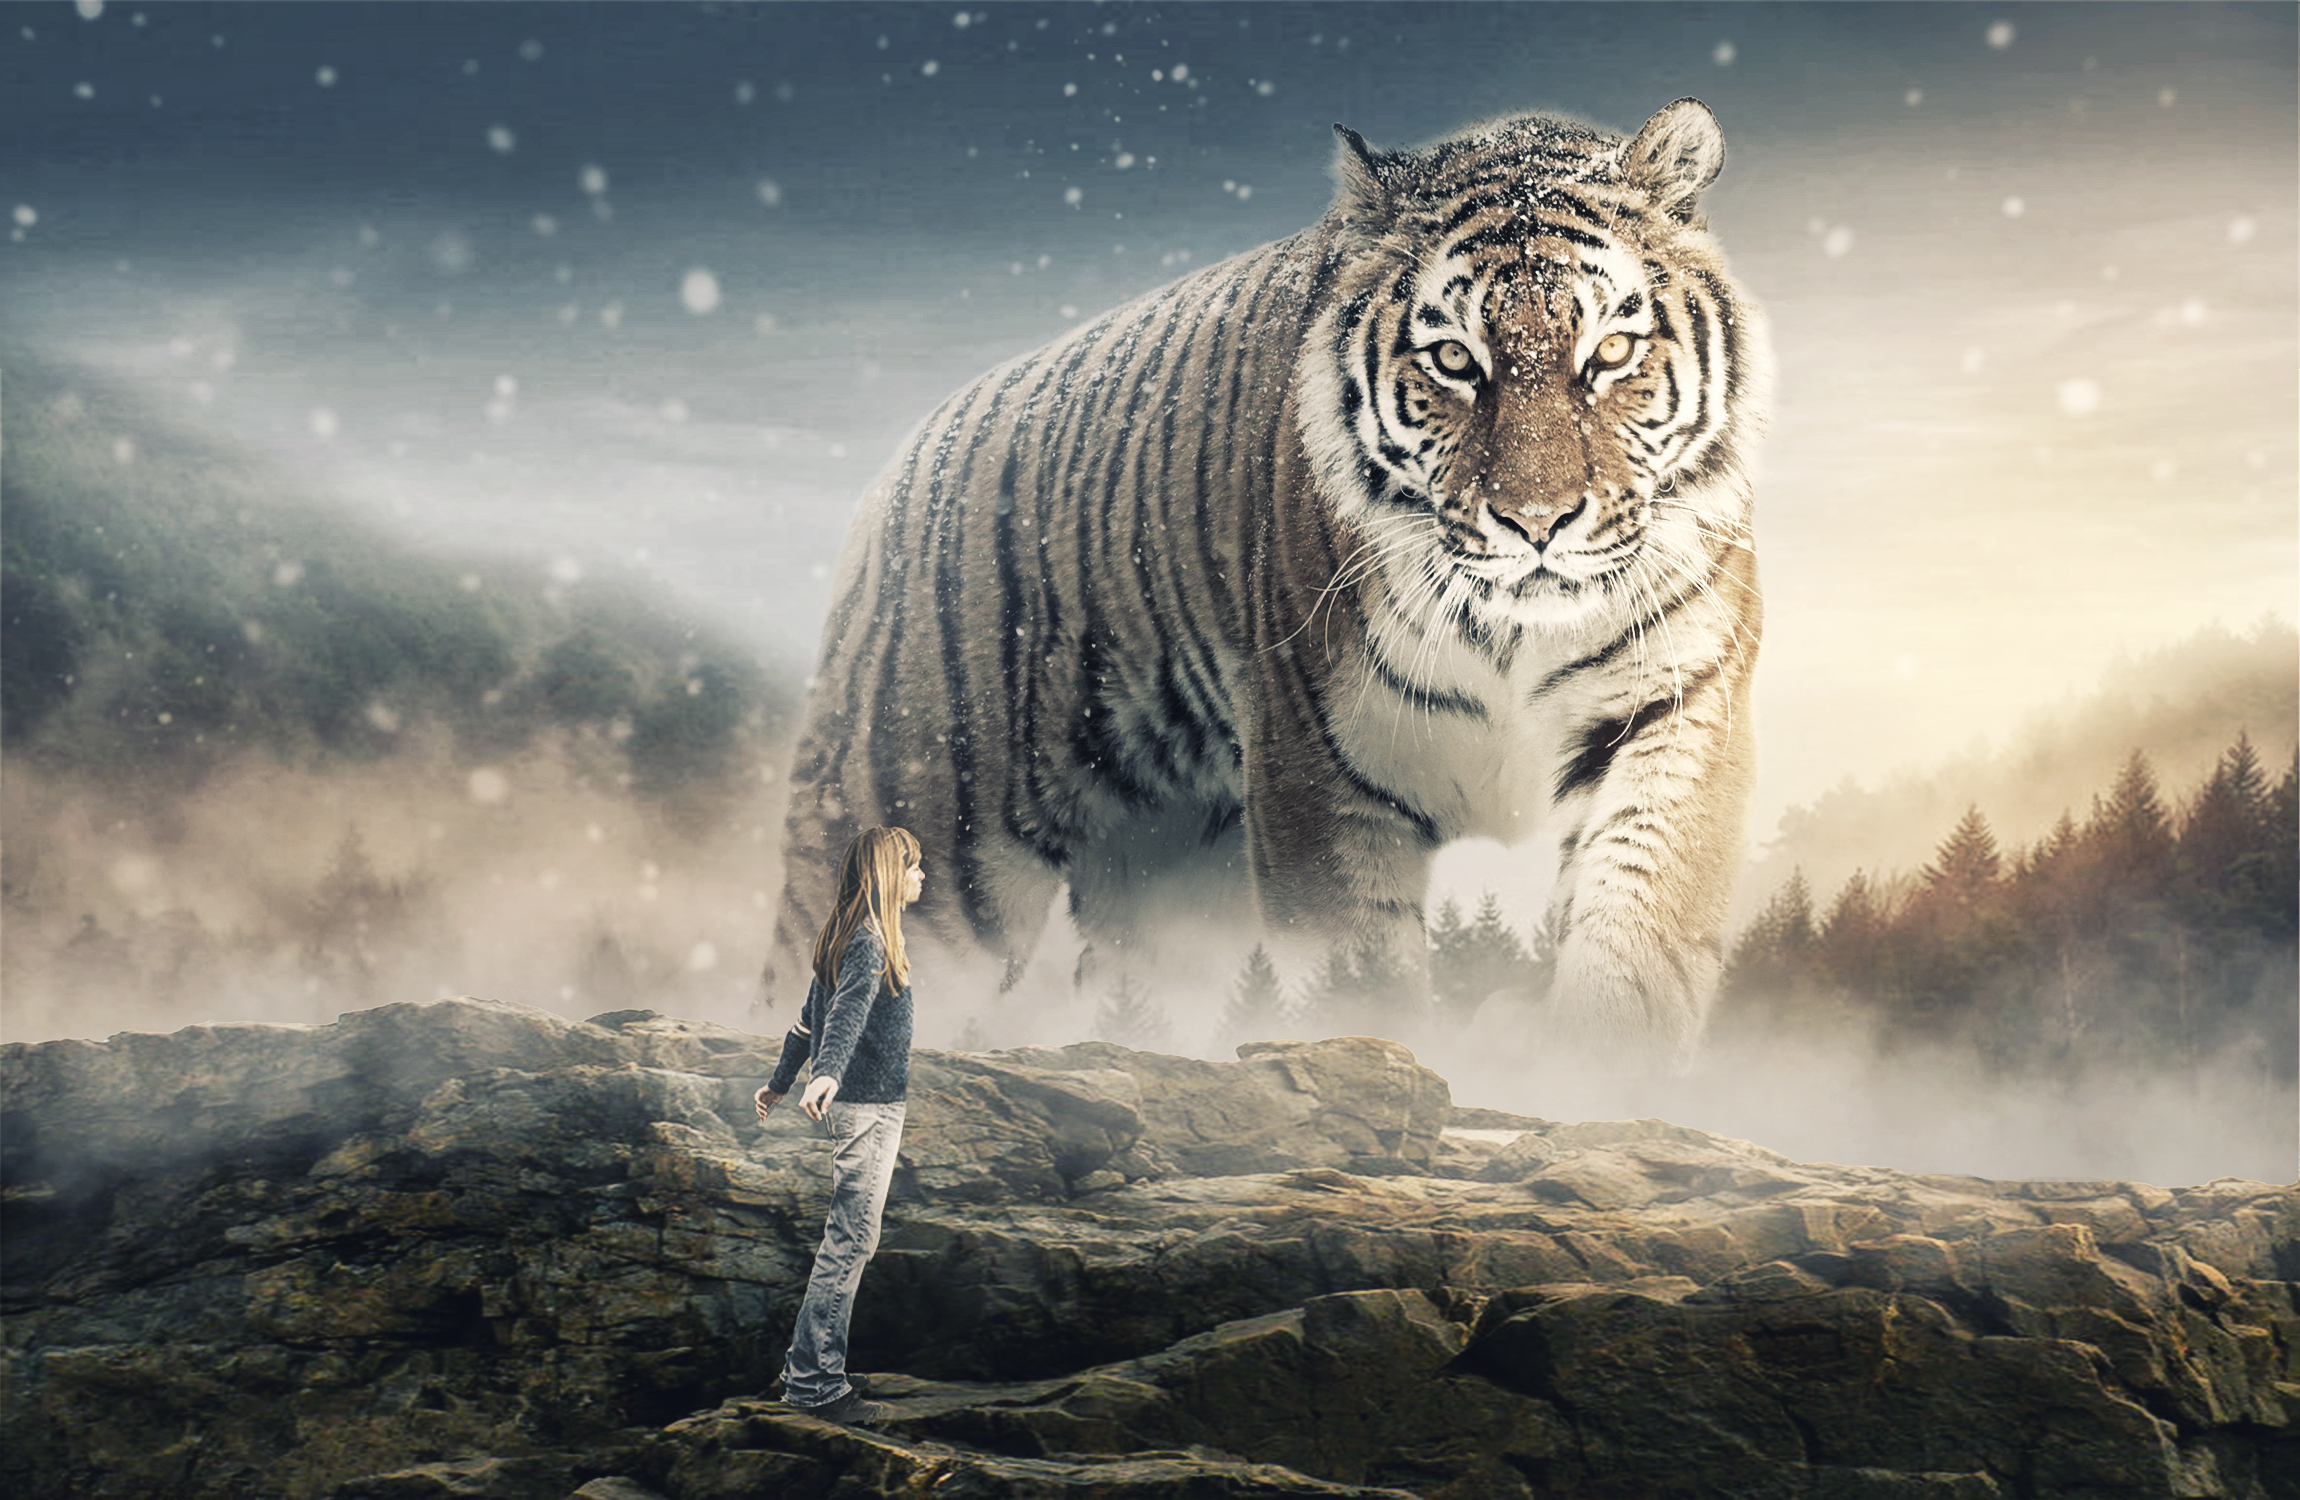 Georgie and the giant tiger